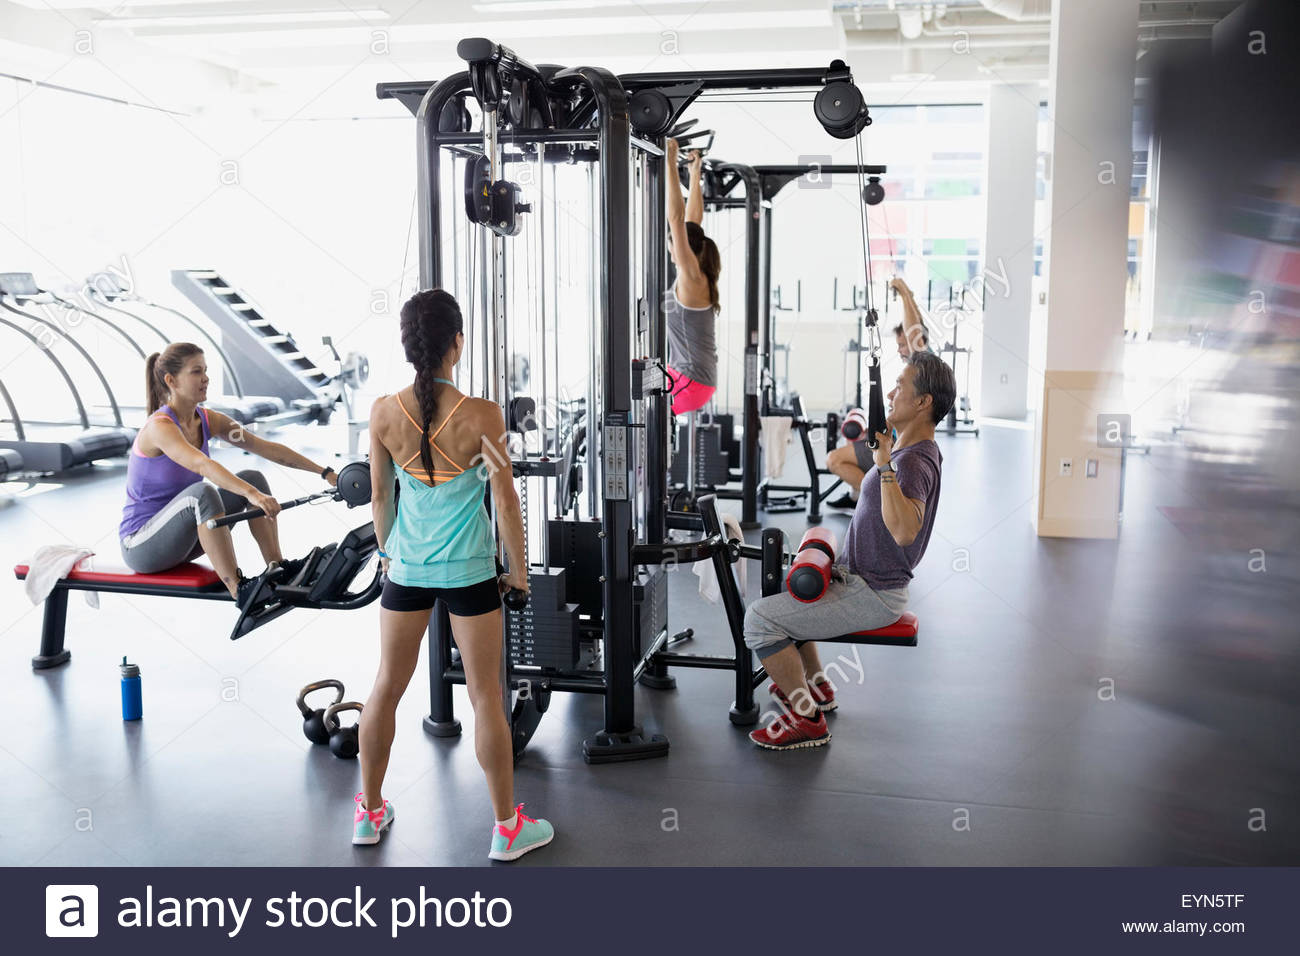 People working out on exercise equipment at gym Stock Photo